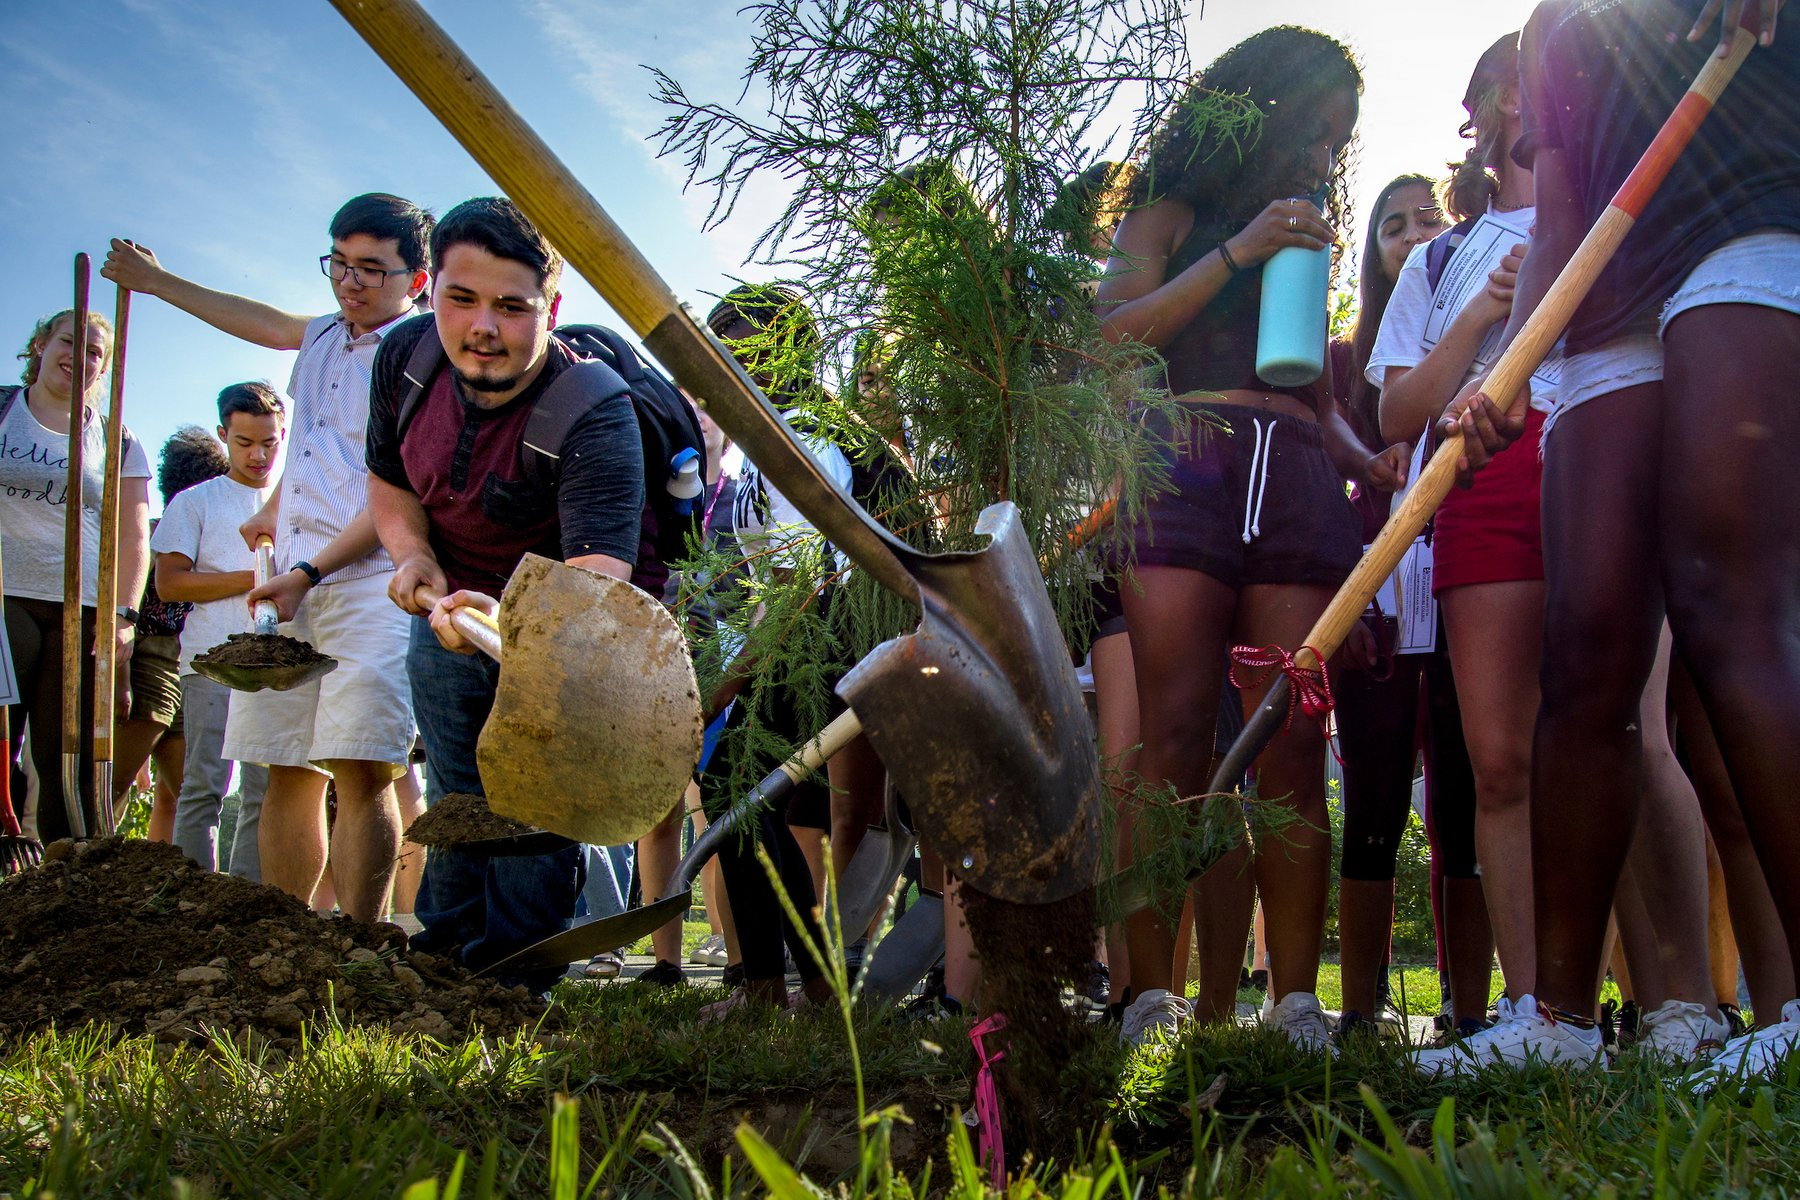 Class of 2024 plants their class tree as part of orientation activities on the campus of Swarthmore College